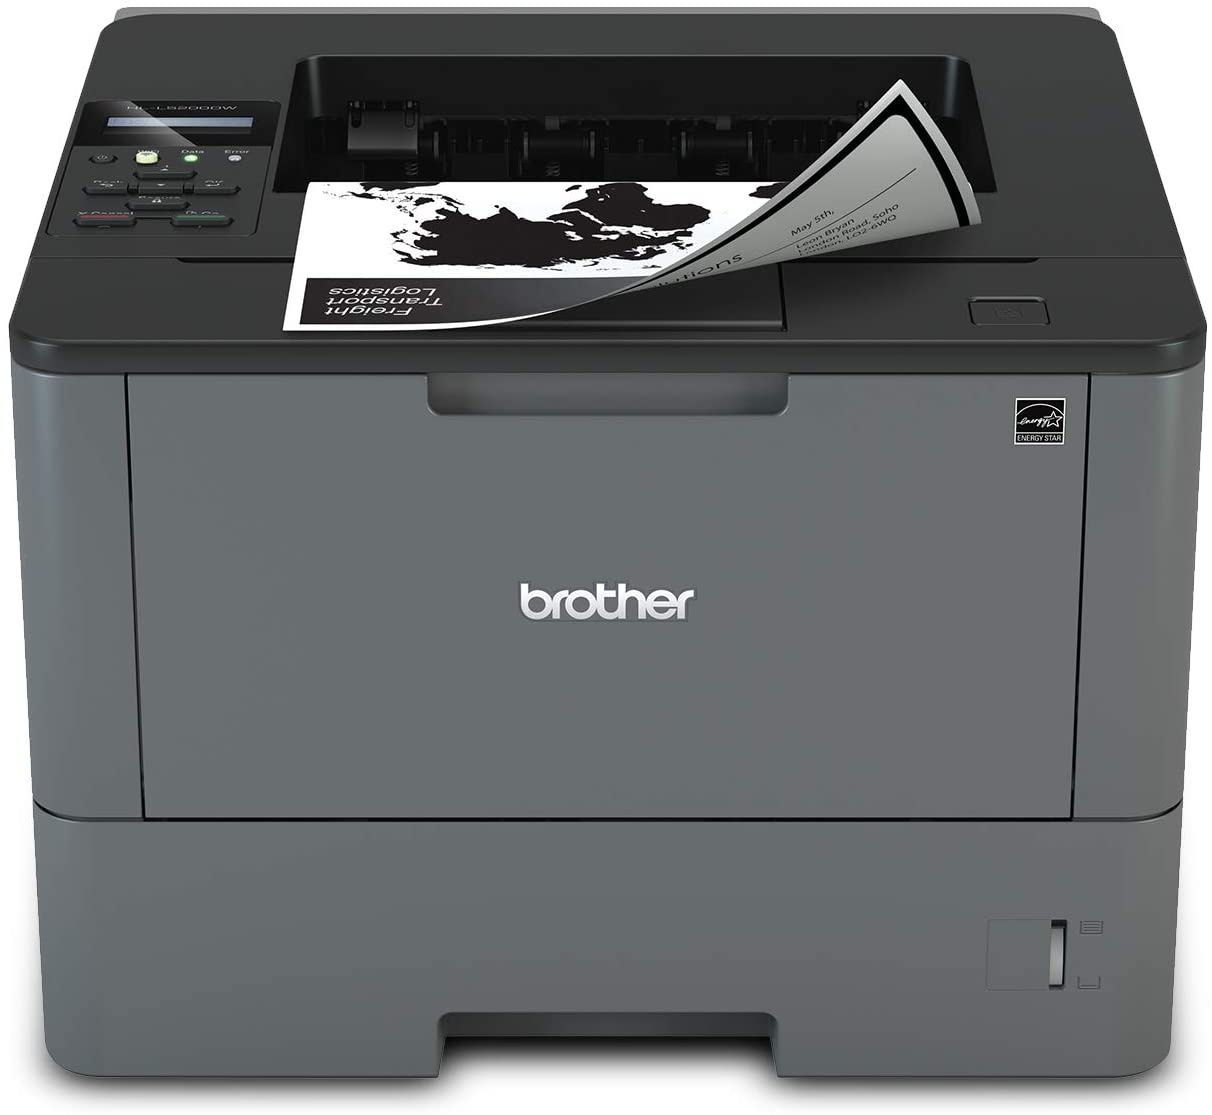 Brother Monochrome Laser Printer, HL-L5200DW